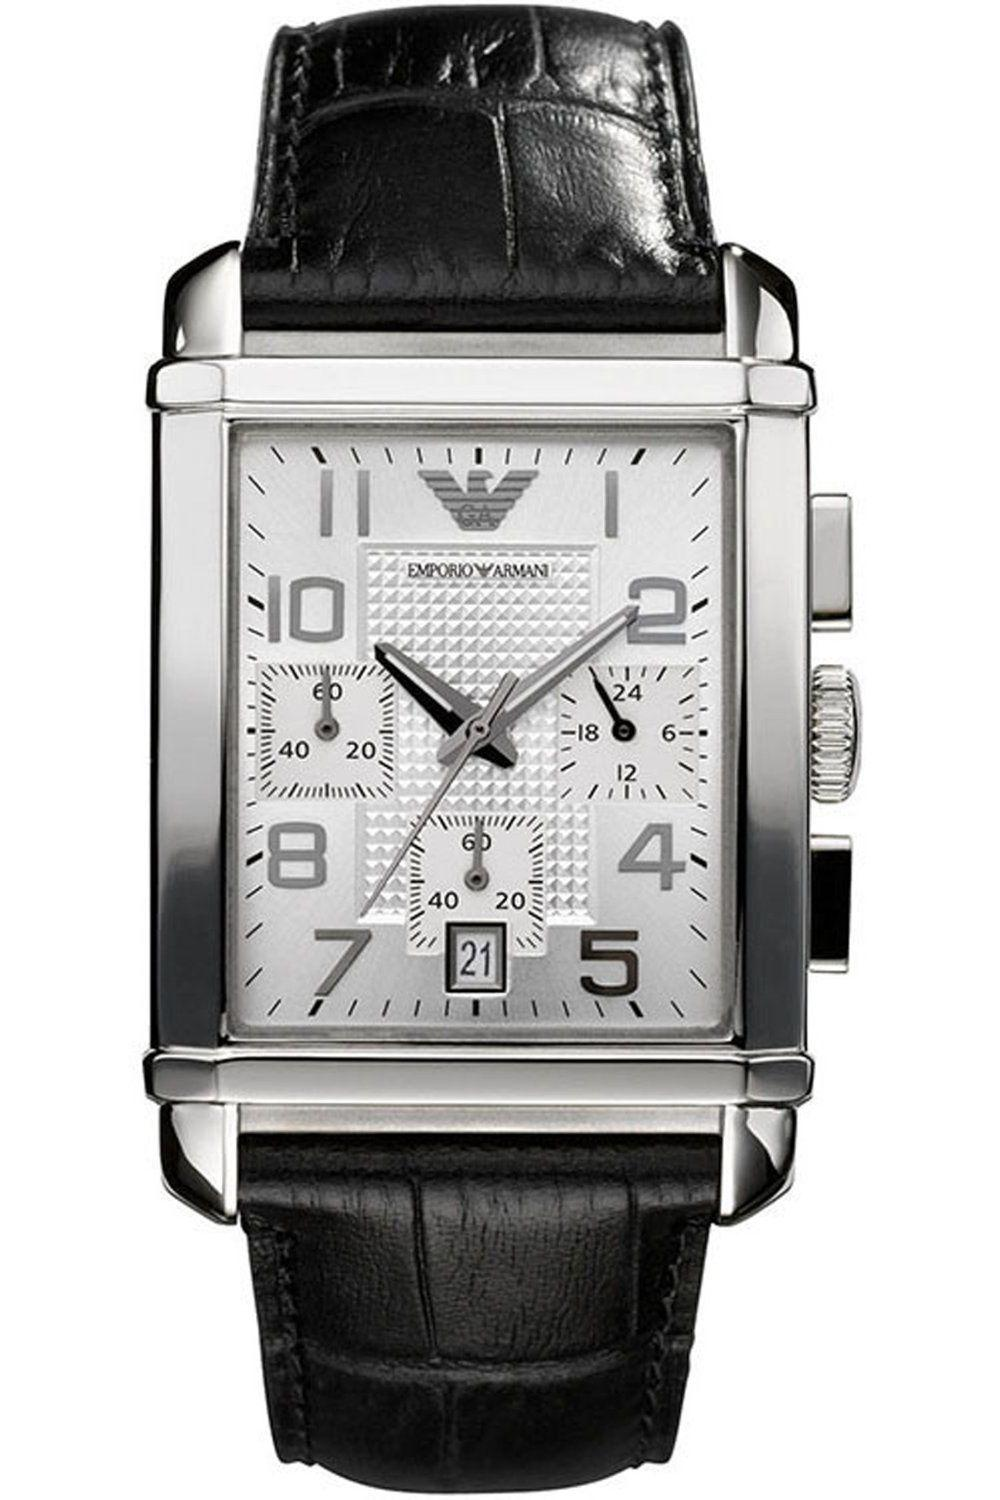 [new] Emporio Armani Mens Black Leather Strap Chronograph Watch 40mm Dial Ar0333 By Watch Centre.